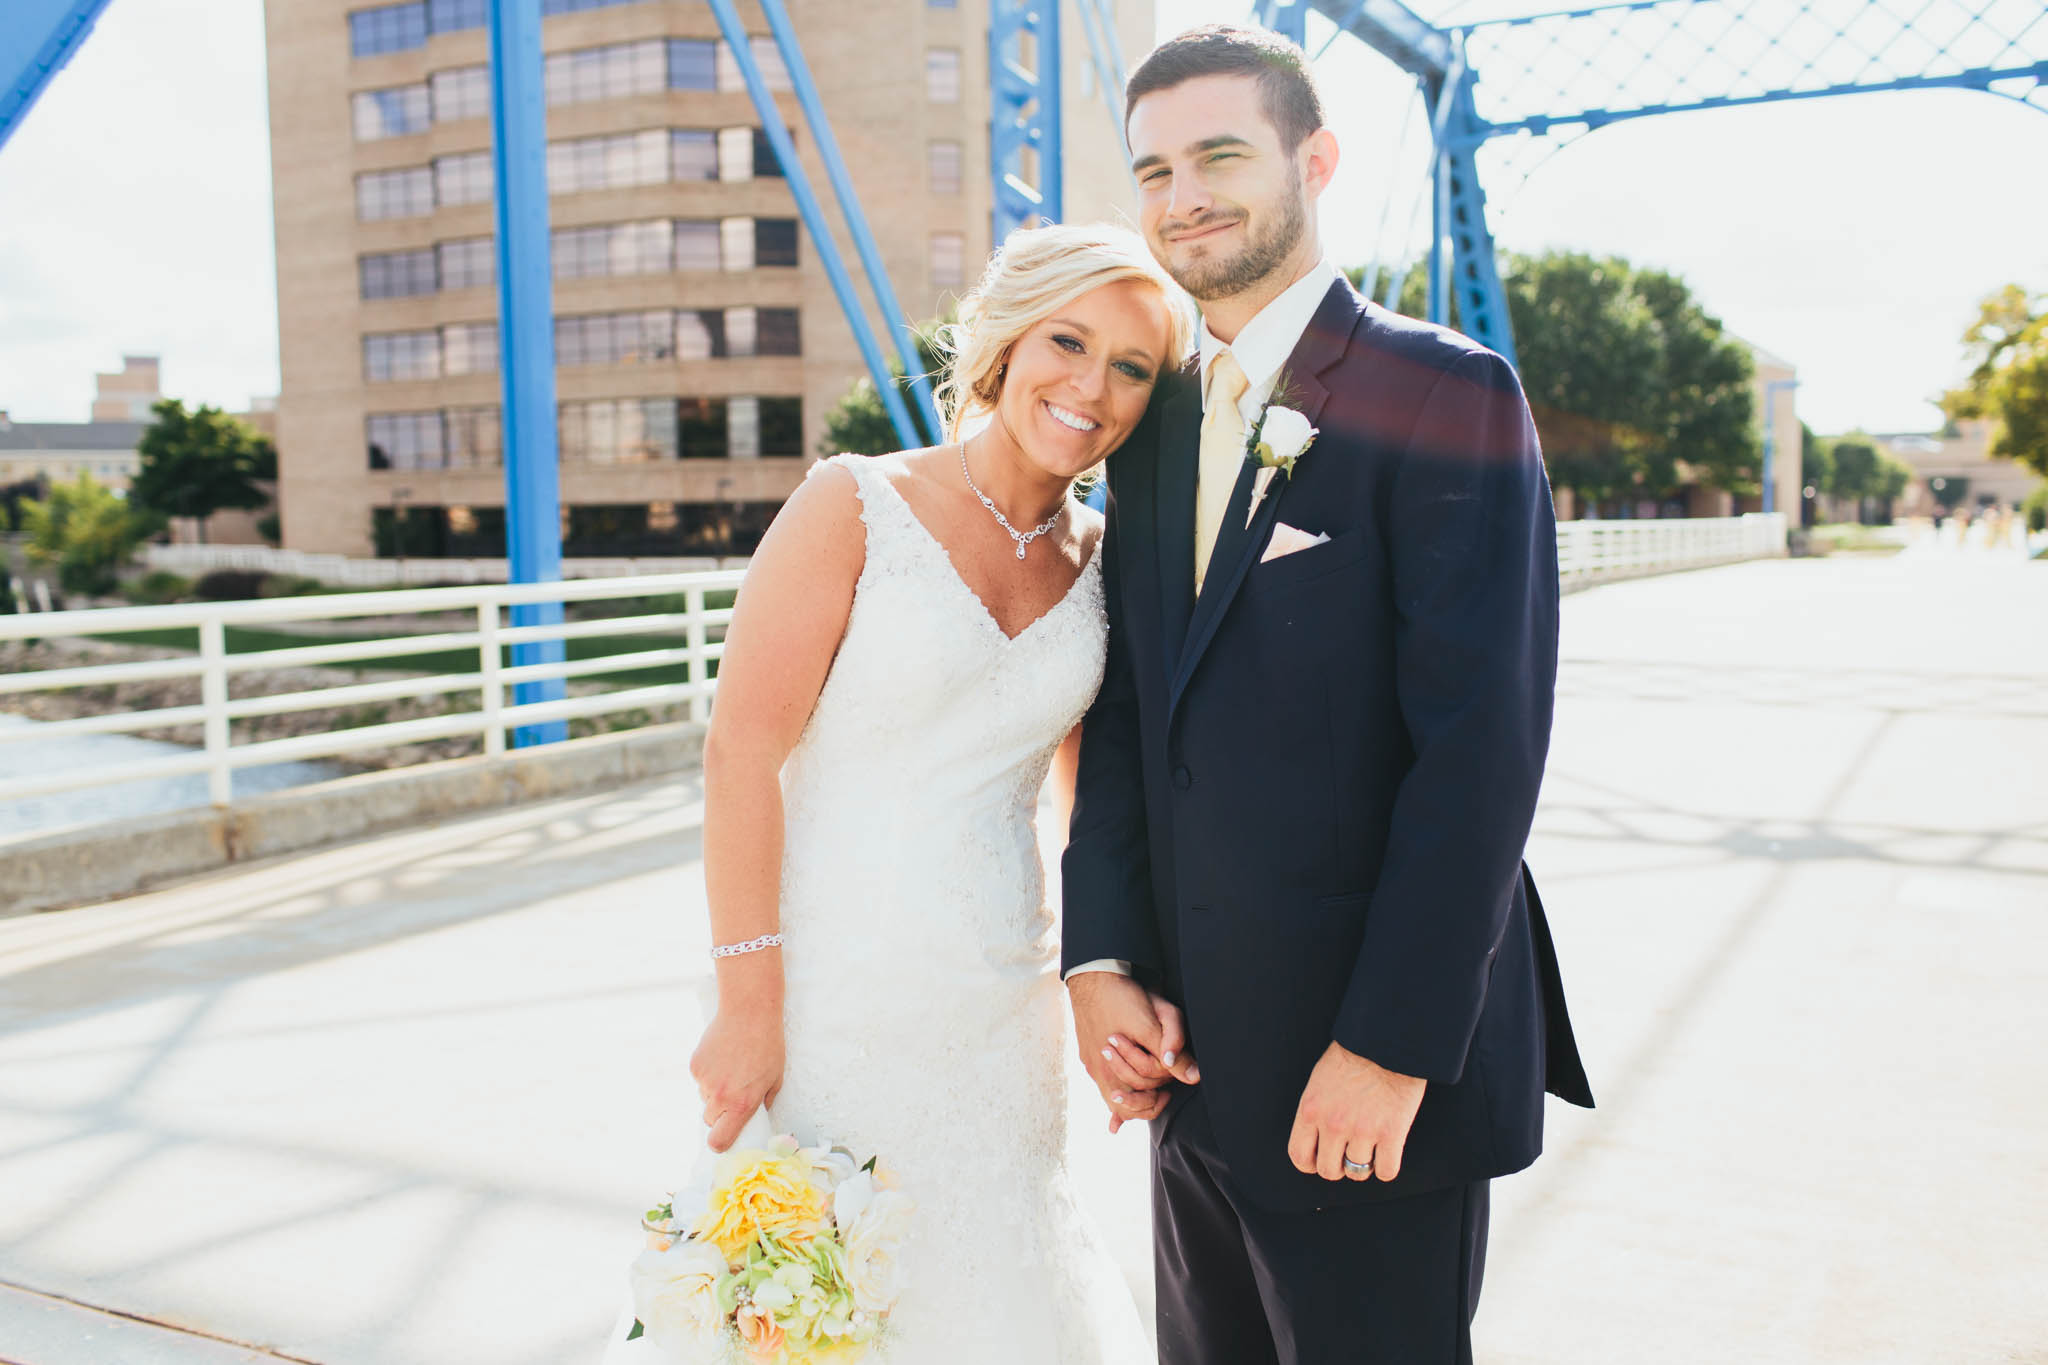 Jillian VanZytveld Photography - Grand Rapids Lifestyle Wedding Photography - 116.jpg